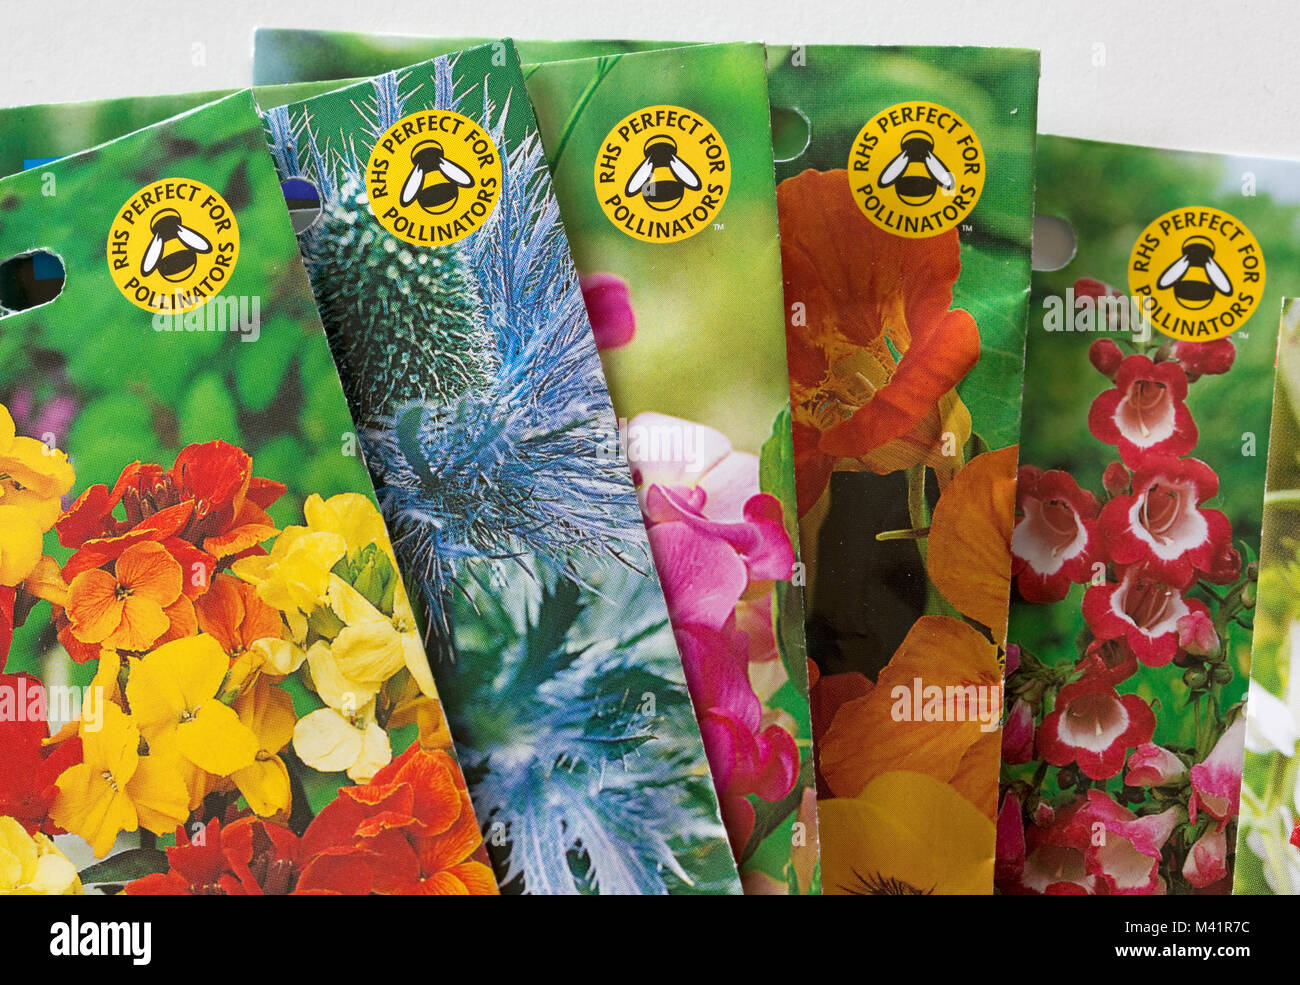 Colourful seed packets displaying RHS perfect for pollinators bee-friendly logo UK - Stock Image